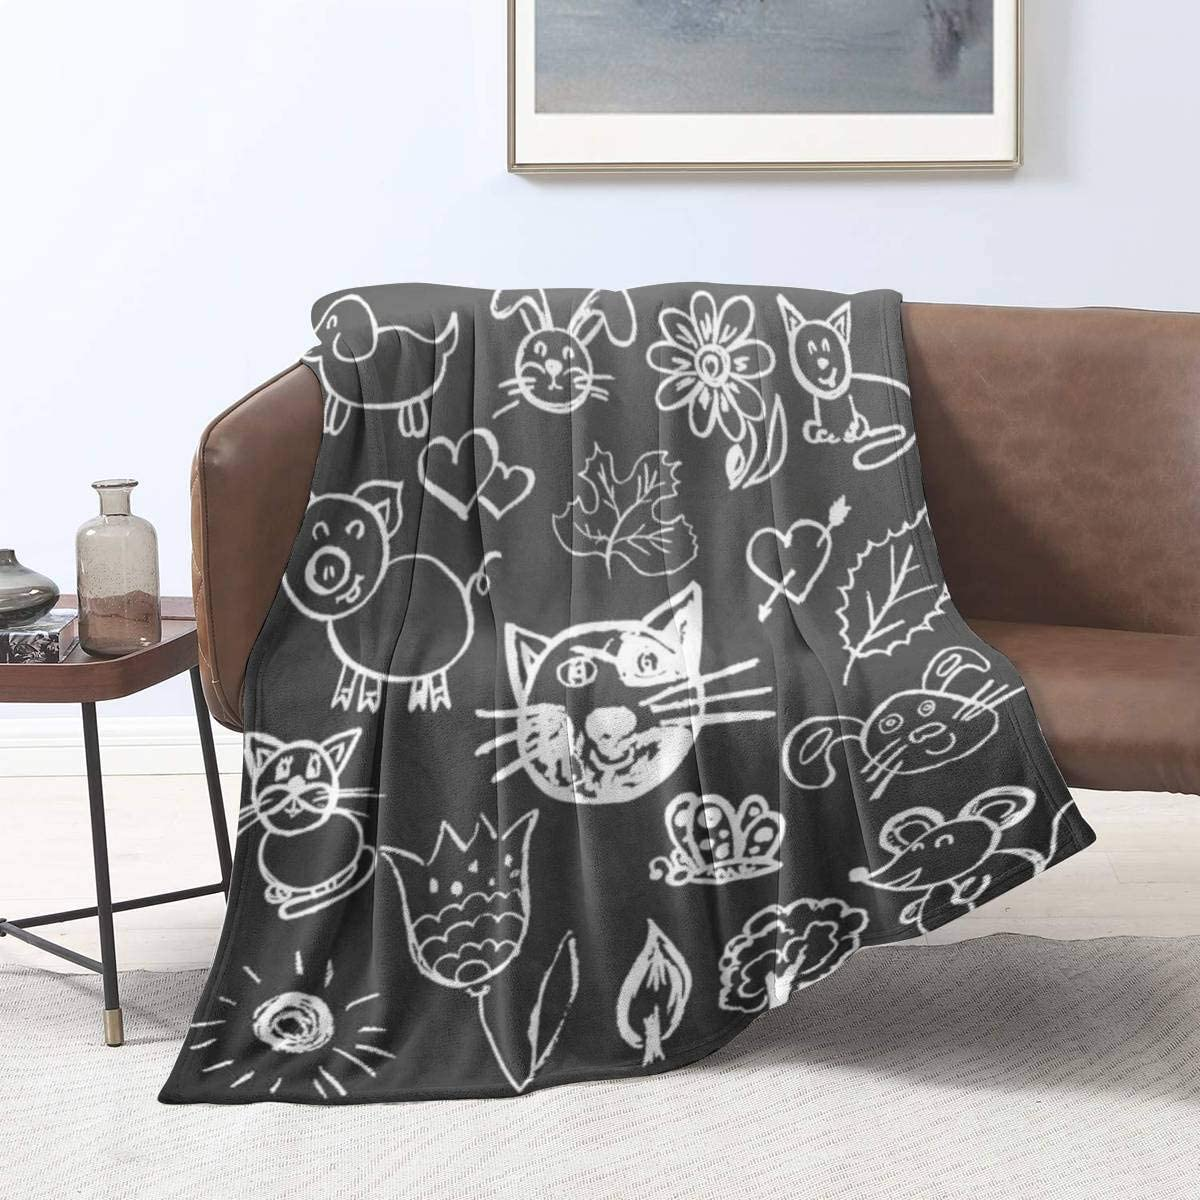 Ellekiwi OFFicial shop Flannel Blanket Cute Safety and trust Children's Signs Drawing Sym Icons